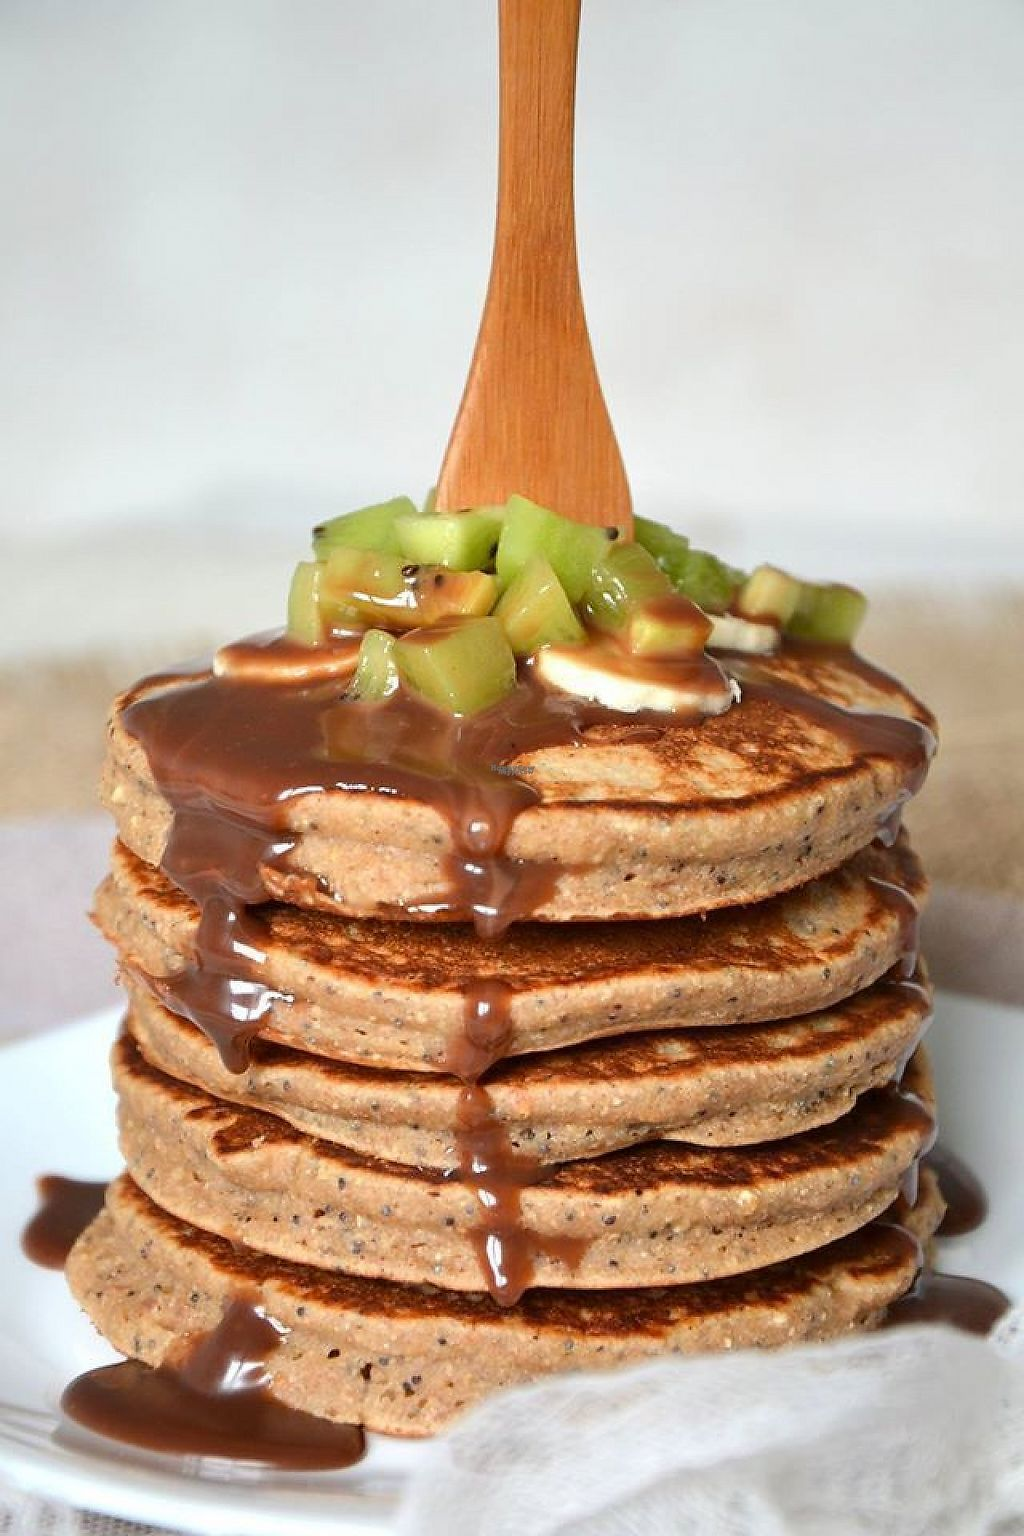 """Photo of La Vie Claire  by <a href=""""/members/profile/community"""">community</a> <br/>vegan pancakes  <br/> February 4, 2017  - <a href='/contact/abuse/image/72030/221883'>Report</a>"""